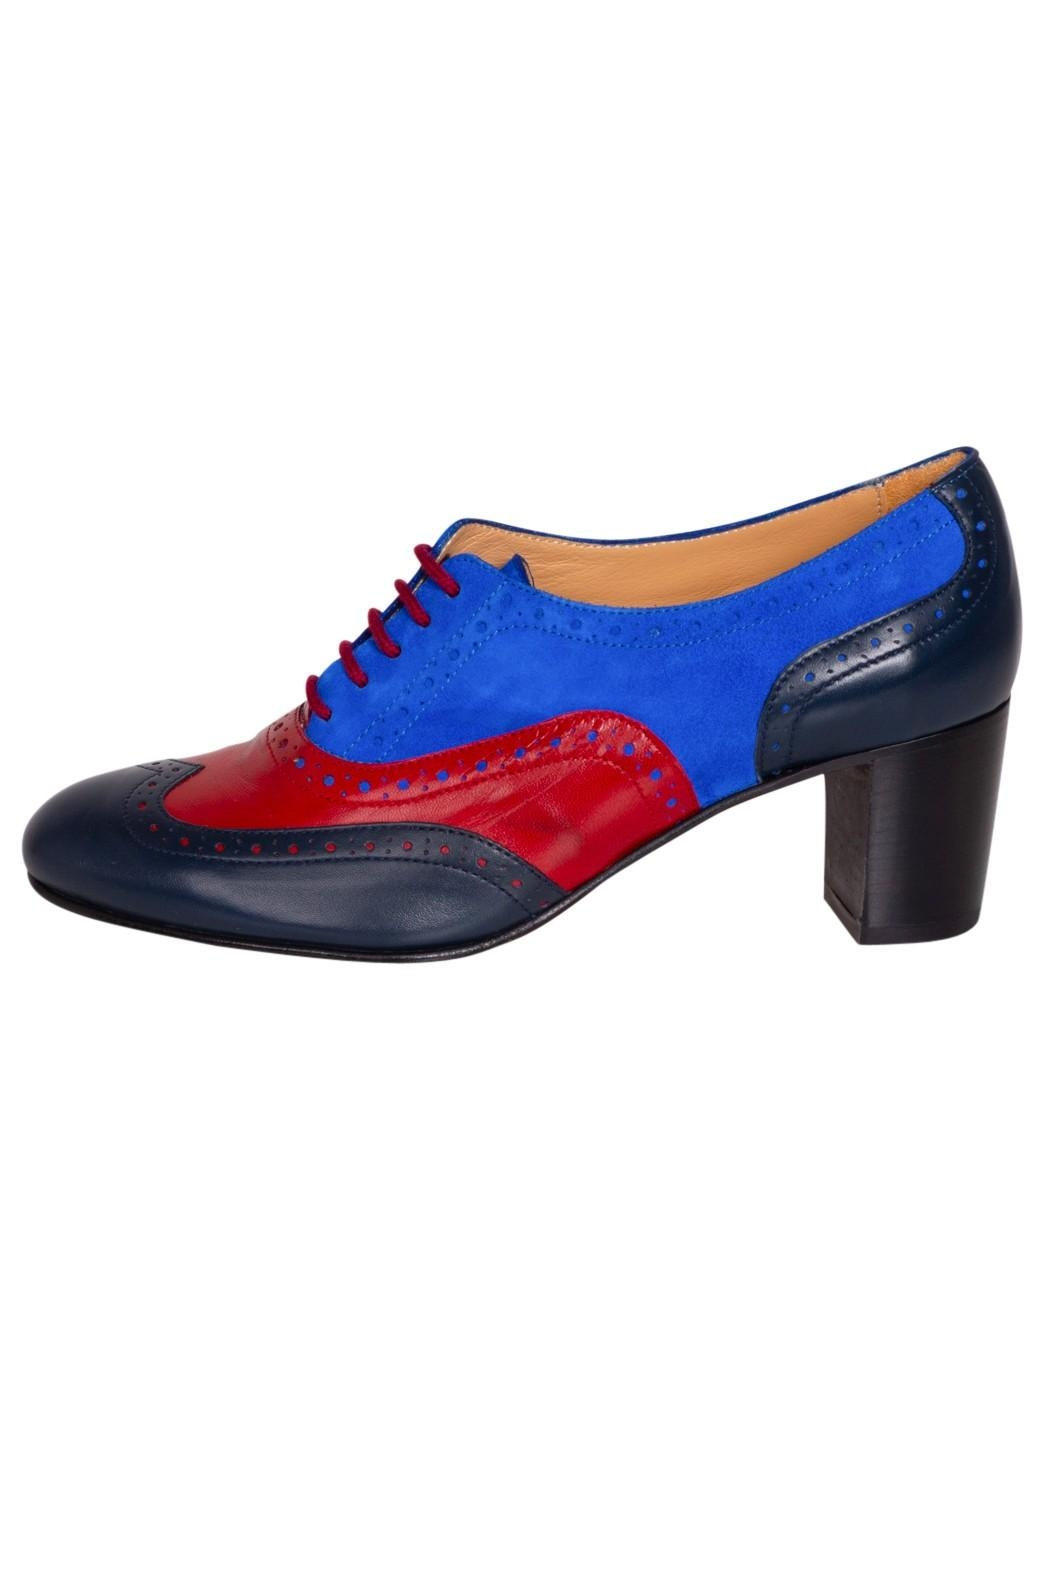 Pascucci High Heel Brogue - Main Image